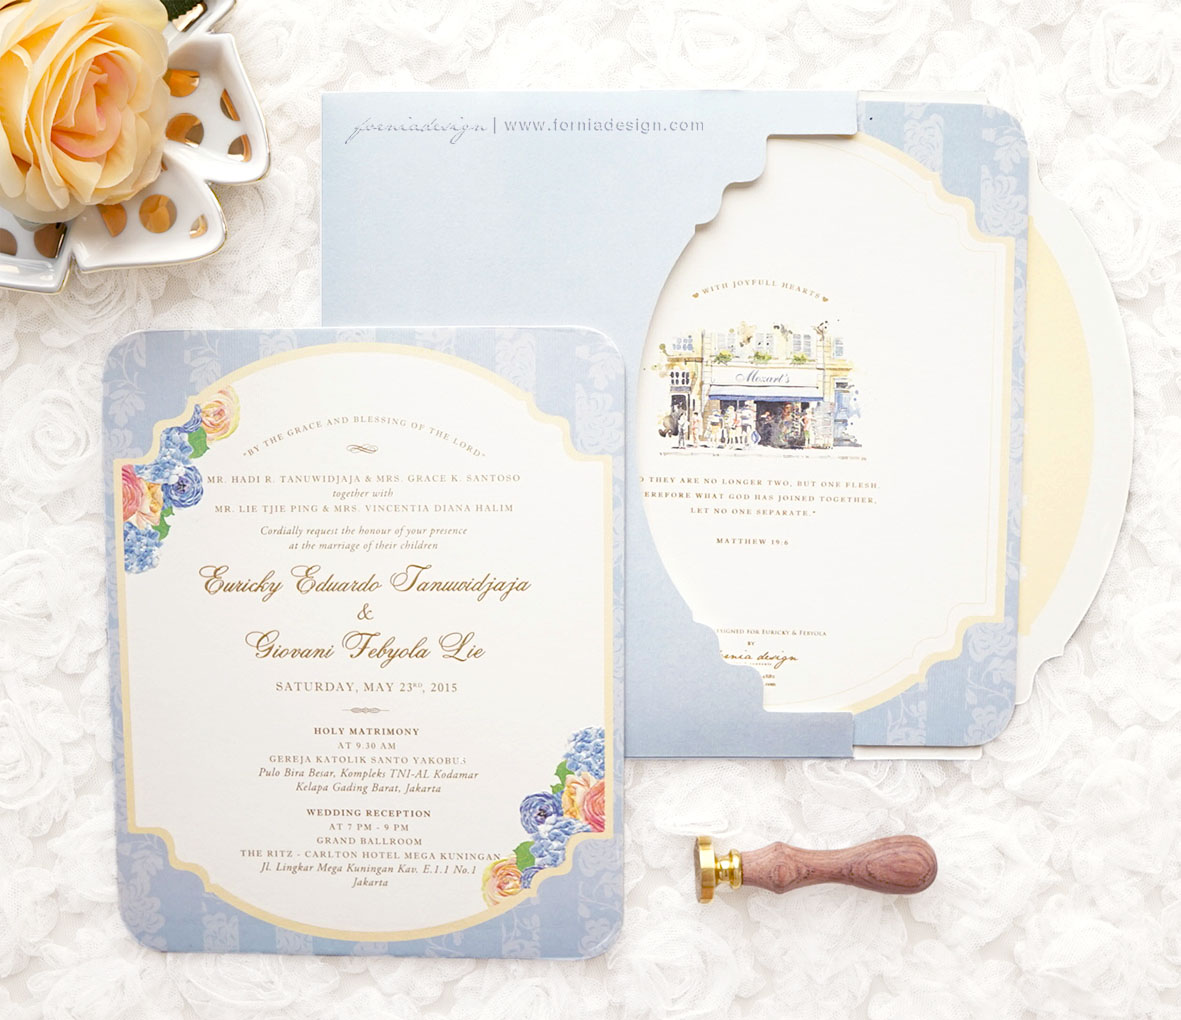 Euricky feby watercolor invitation by fornia design invitation euricky feby watercolor invitation by fornia design invitation bridestory stopboris Images